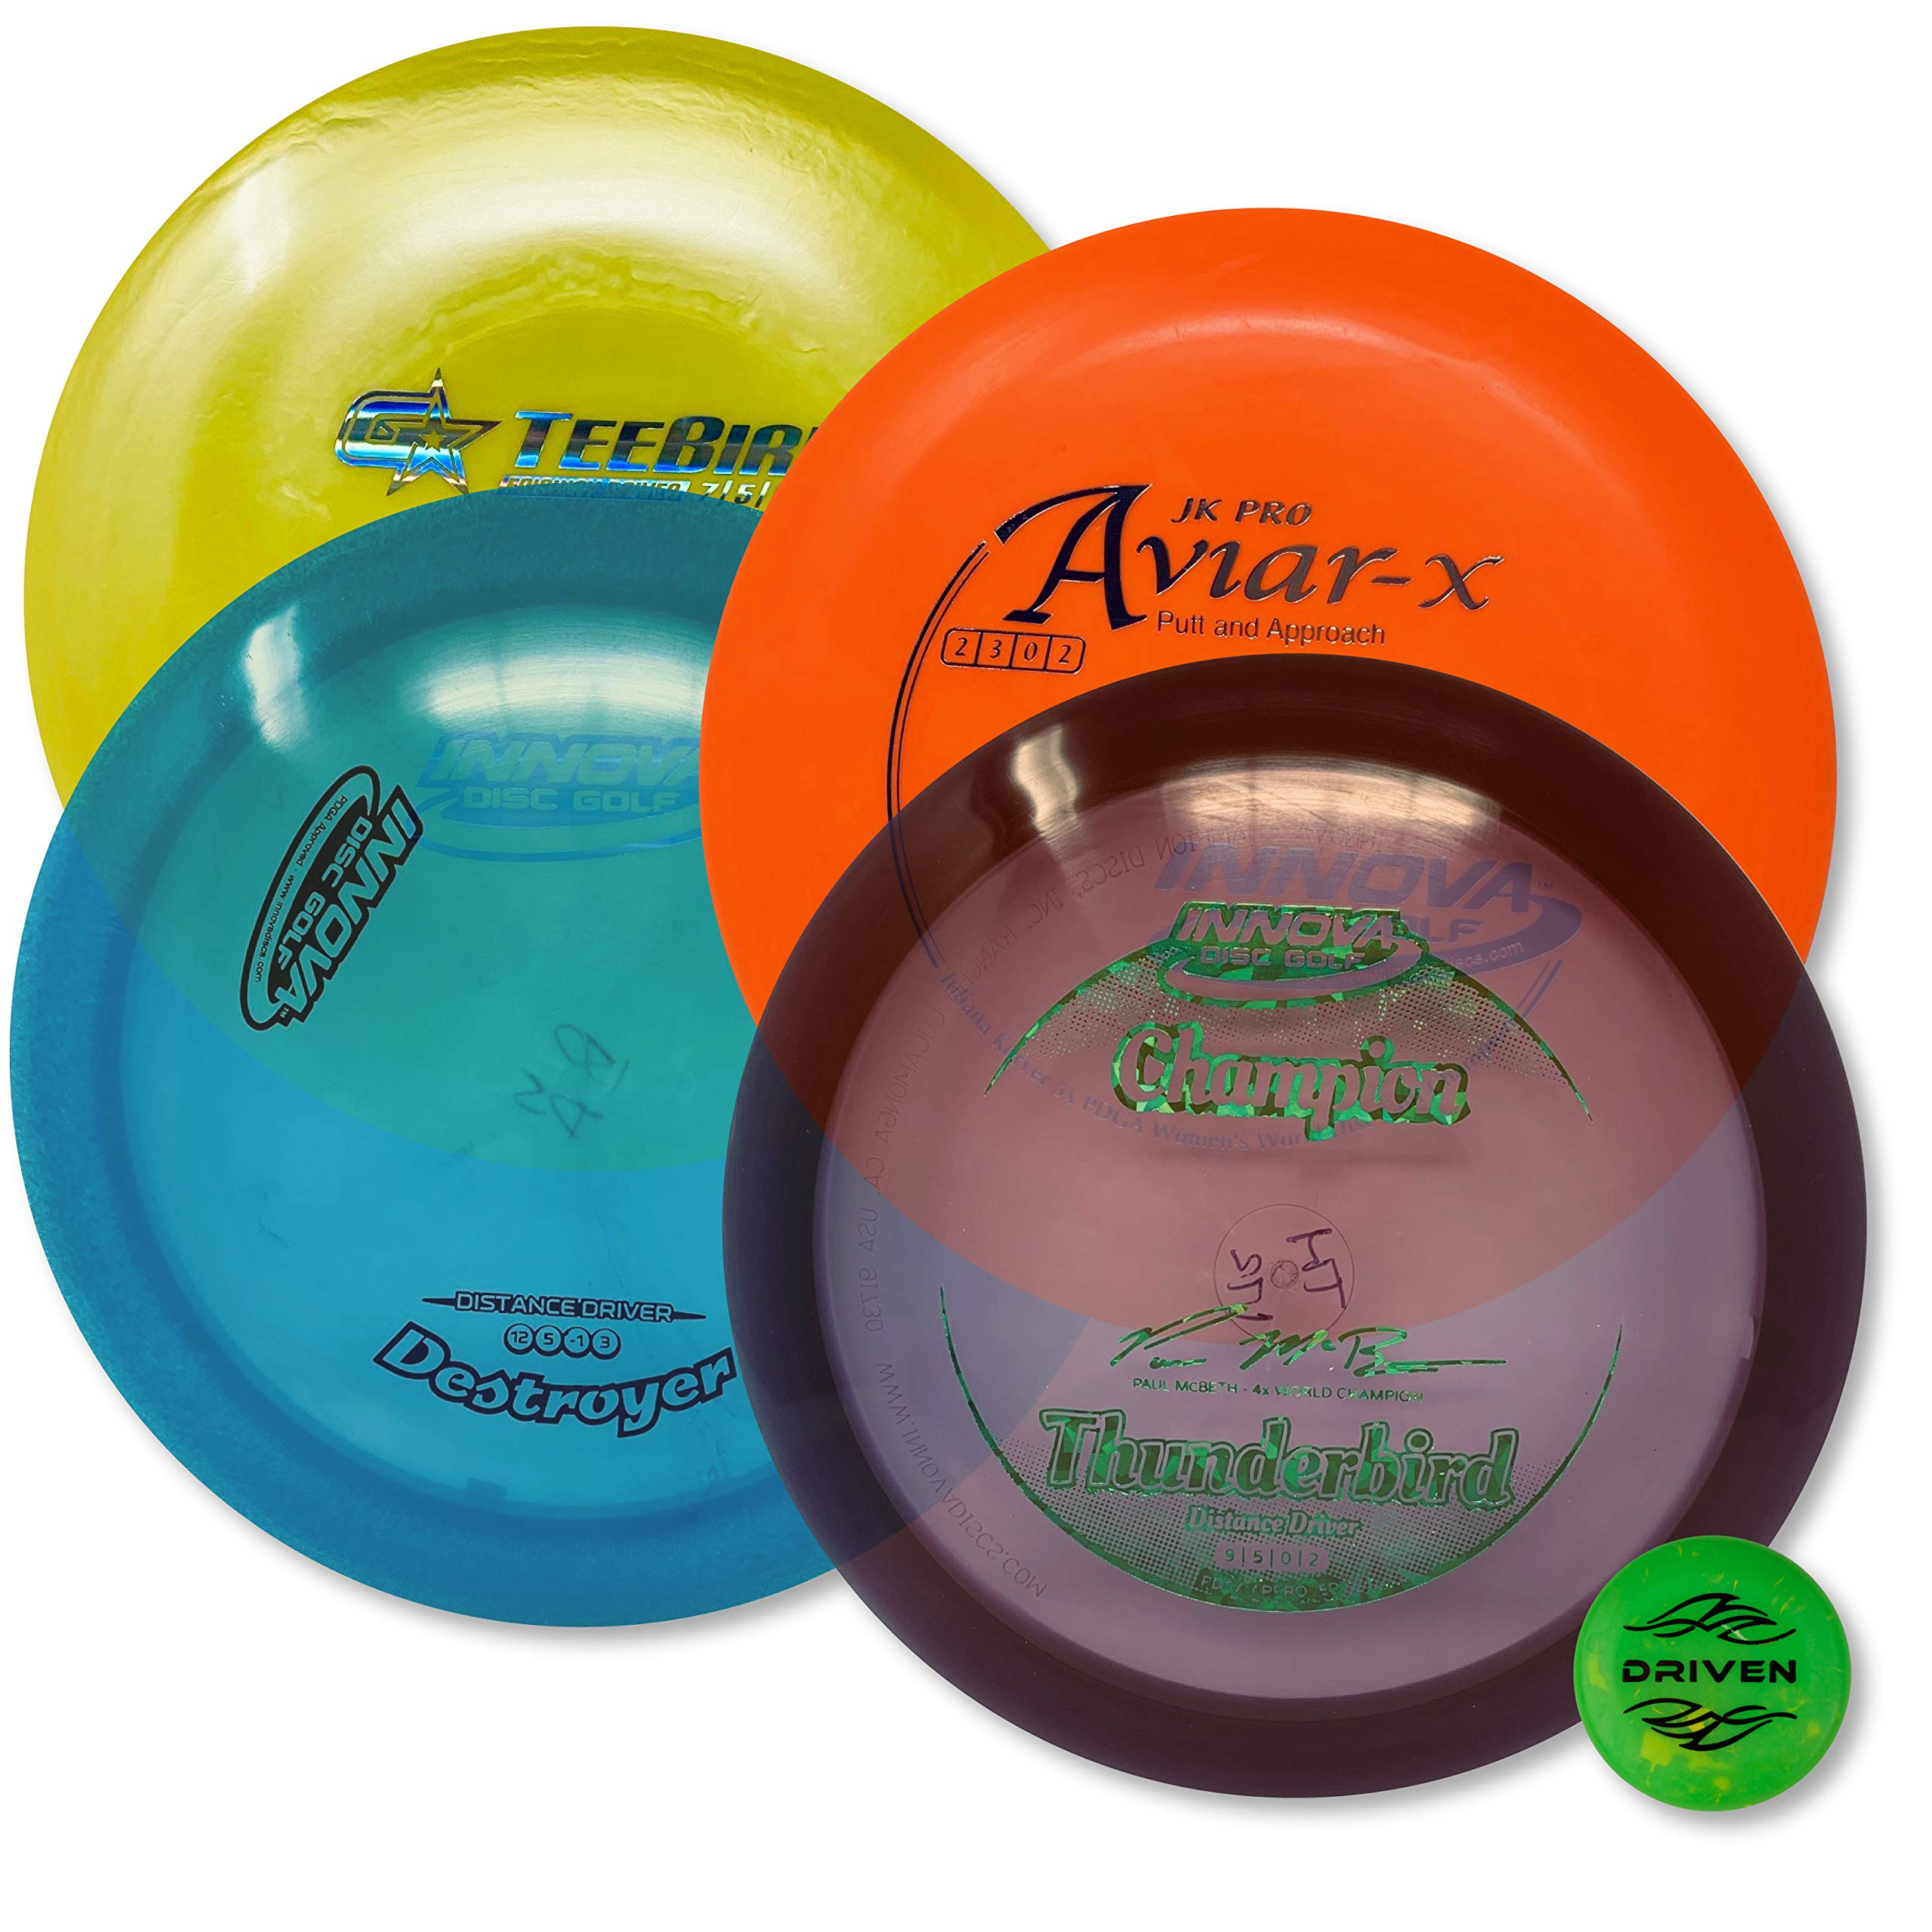 Driven Disc Golf - Advanced Players Pack (4 Disc Set Ver 2 - Premium (Colors Vary)) by Driven Disc Golf (Image #1)